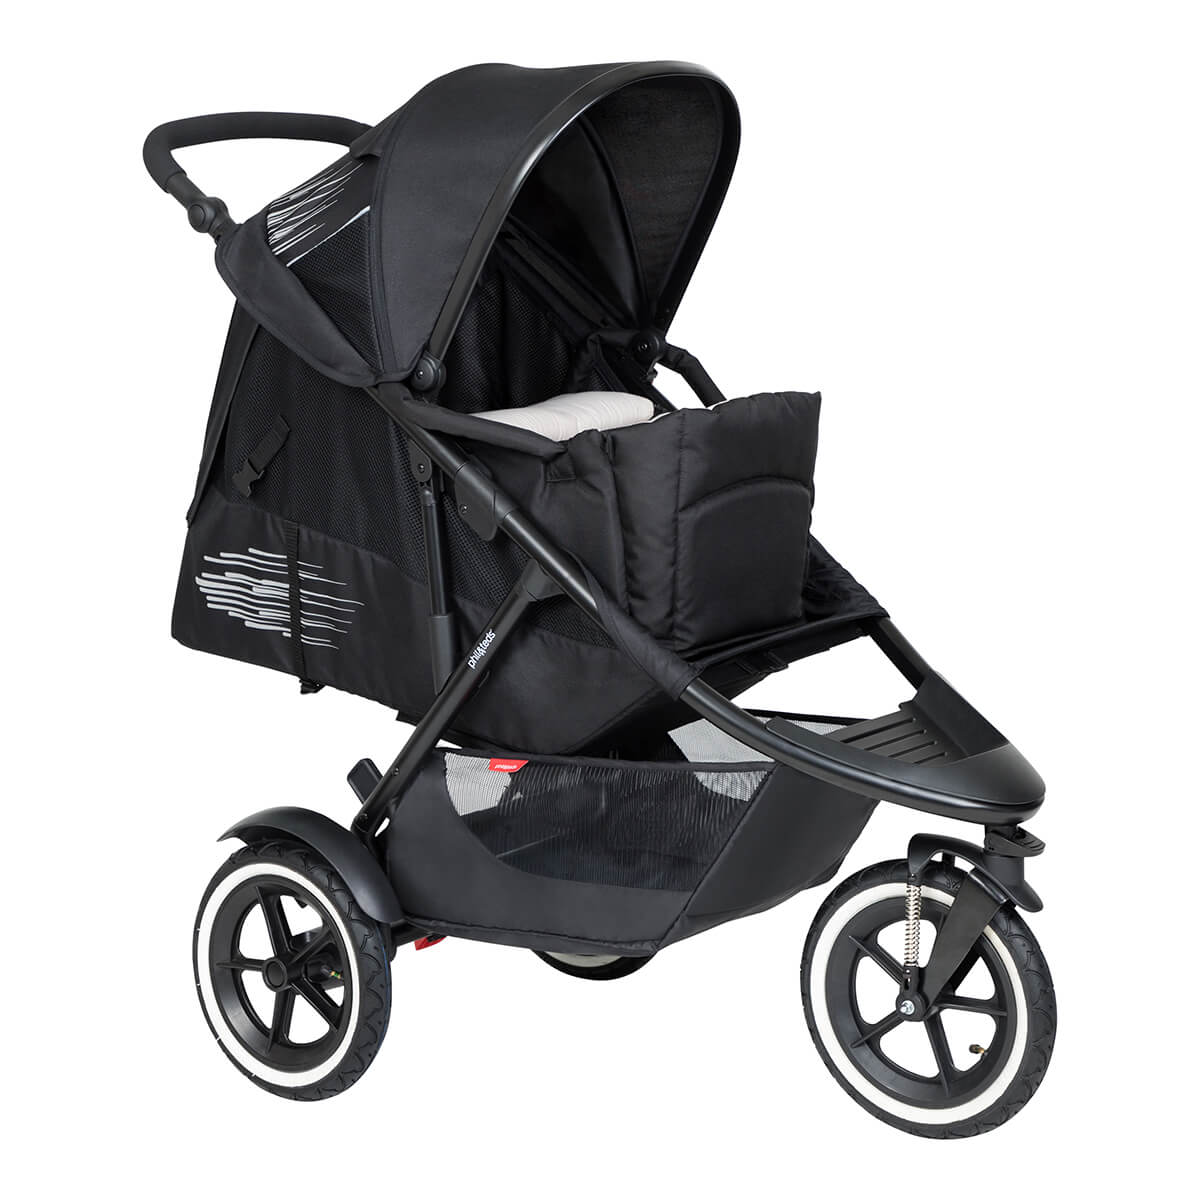 https://cdn.accentuate.io/4509902471245/19466203660482/philteds-sport-buggy-with-cocoon-full-recline-v1626485431361.jpg?1200x1200